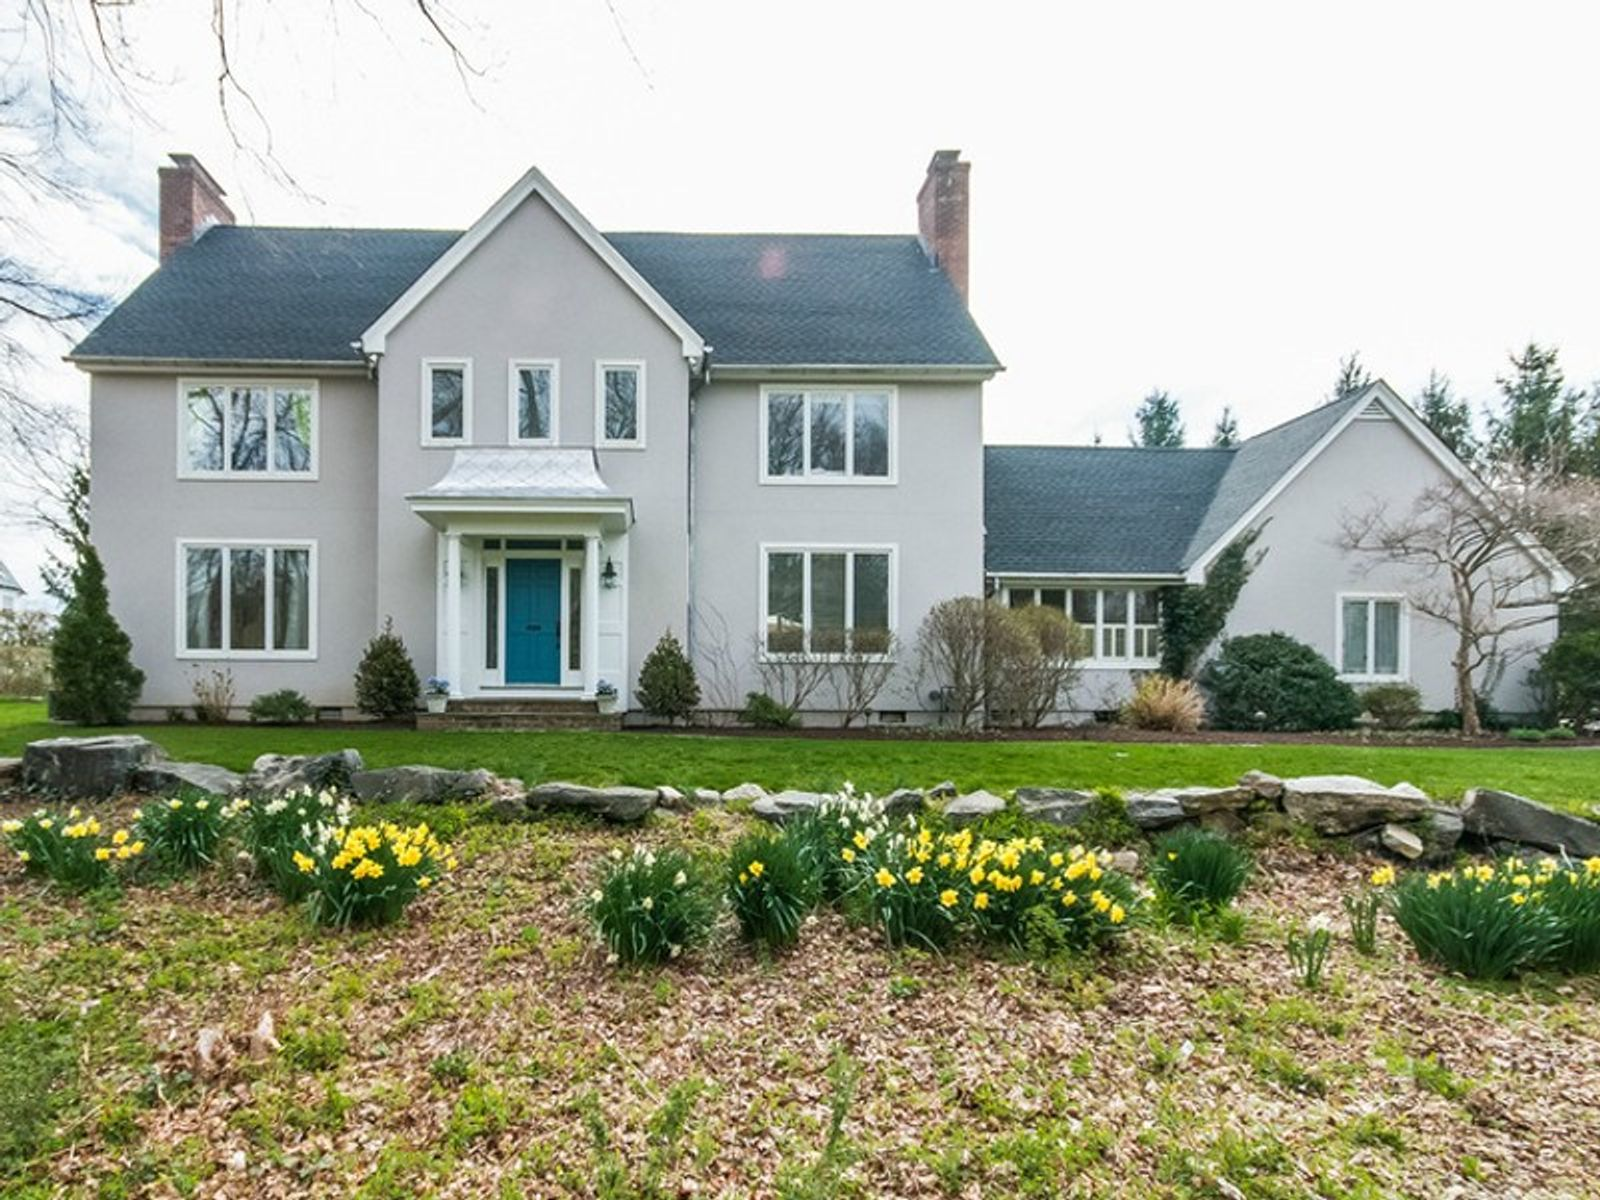 Picturesque in Riverside, Riverside CT Single Family Home - Greenwich Real Estate